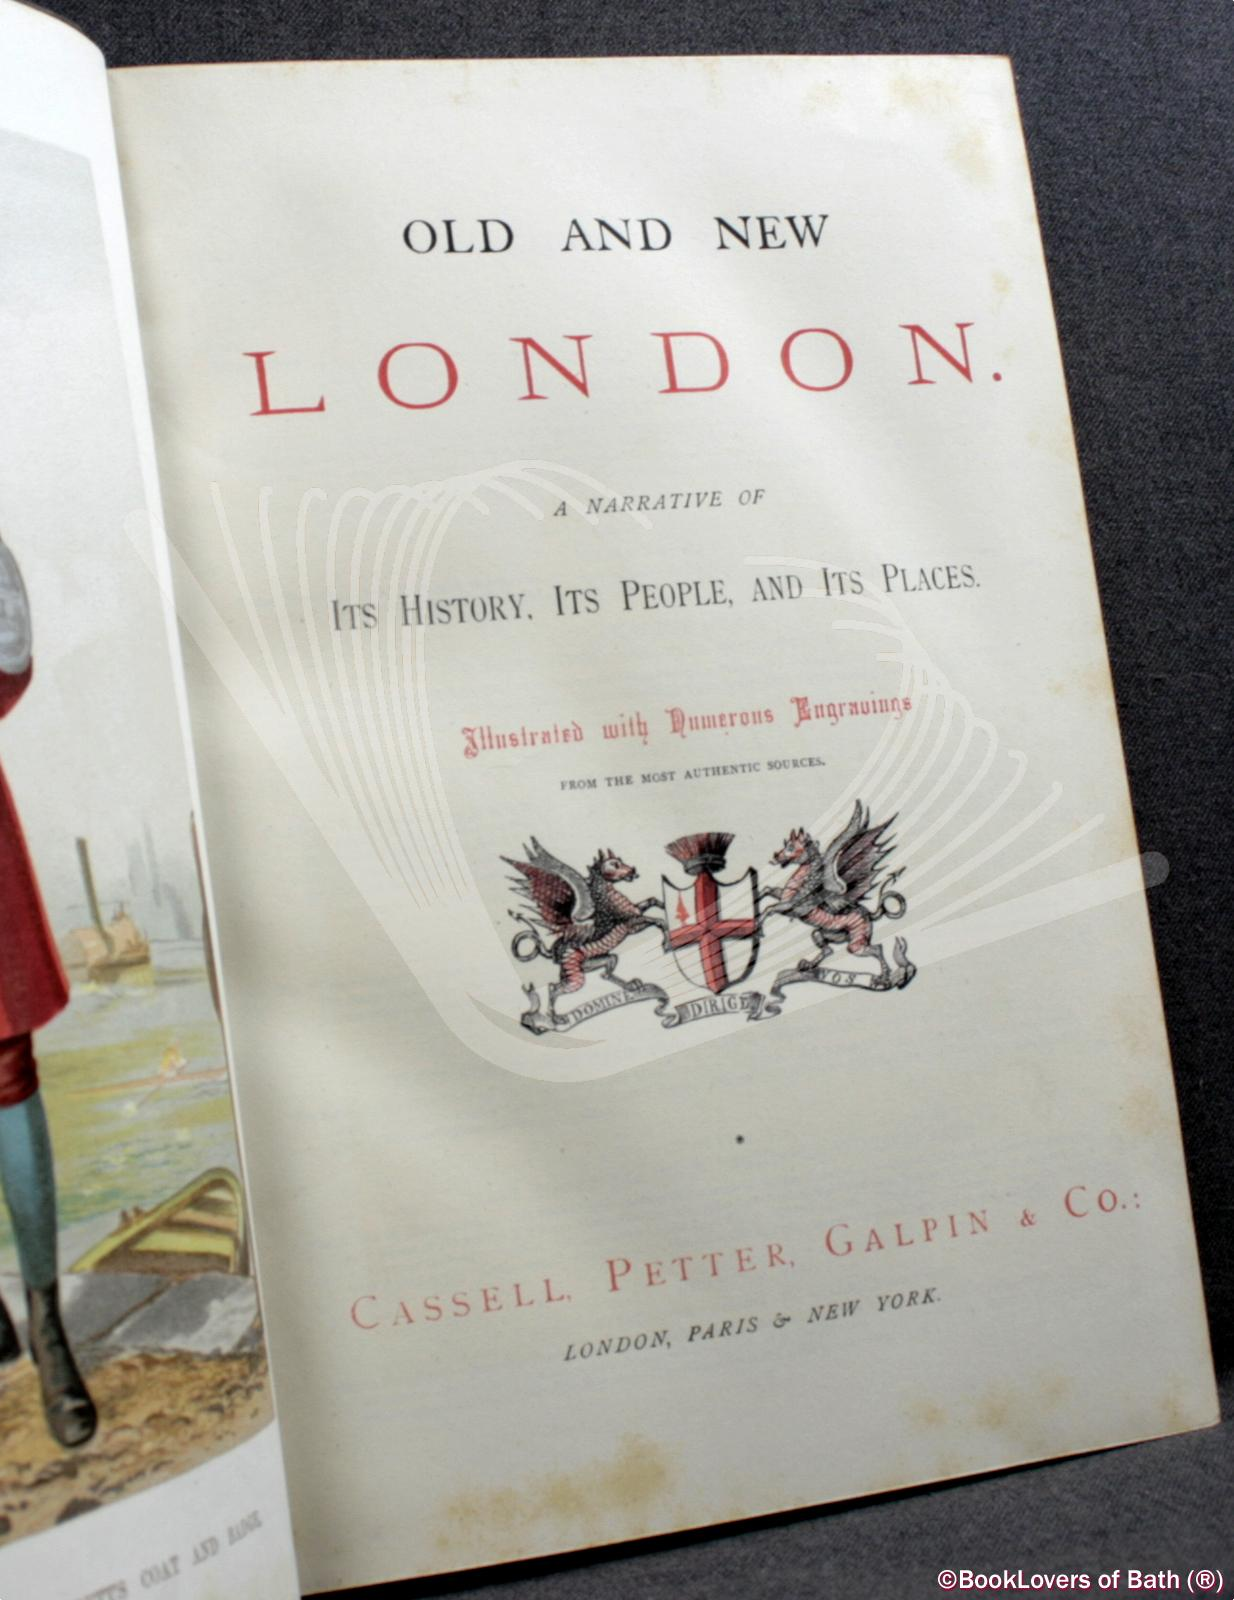 Old and New London: A Narrative of Its History, Its People and Its Places - Walter Thornbury & Edward Walford